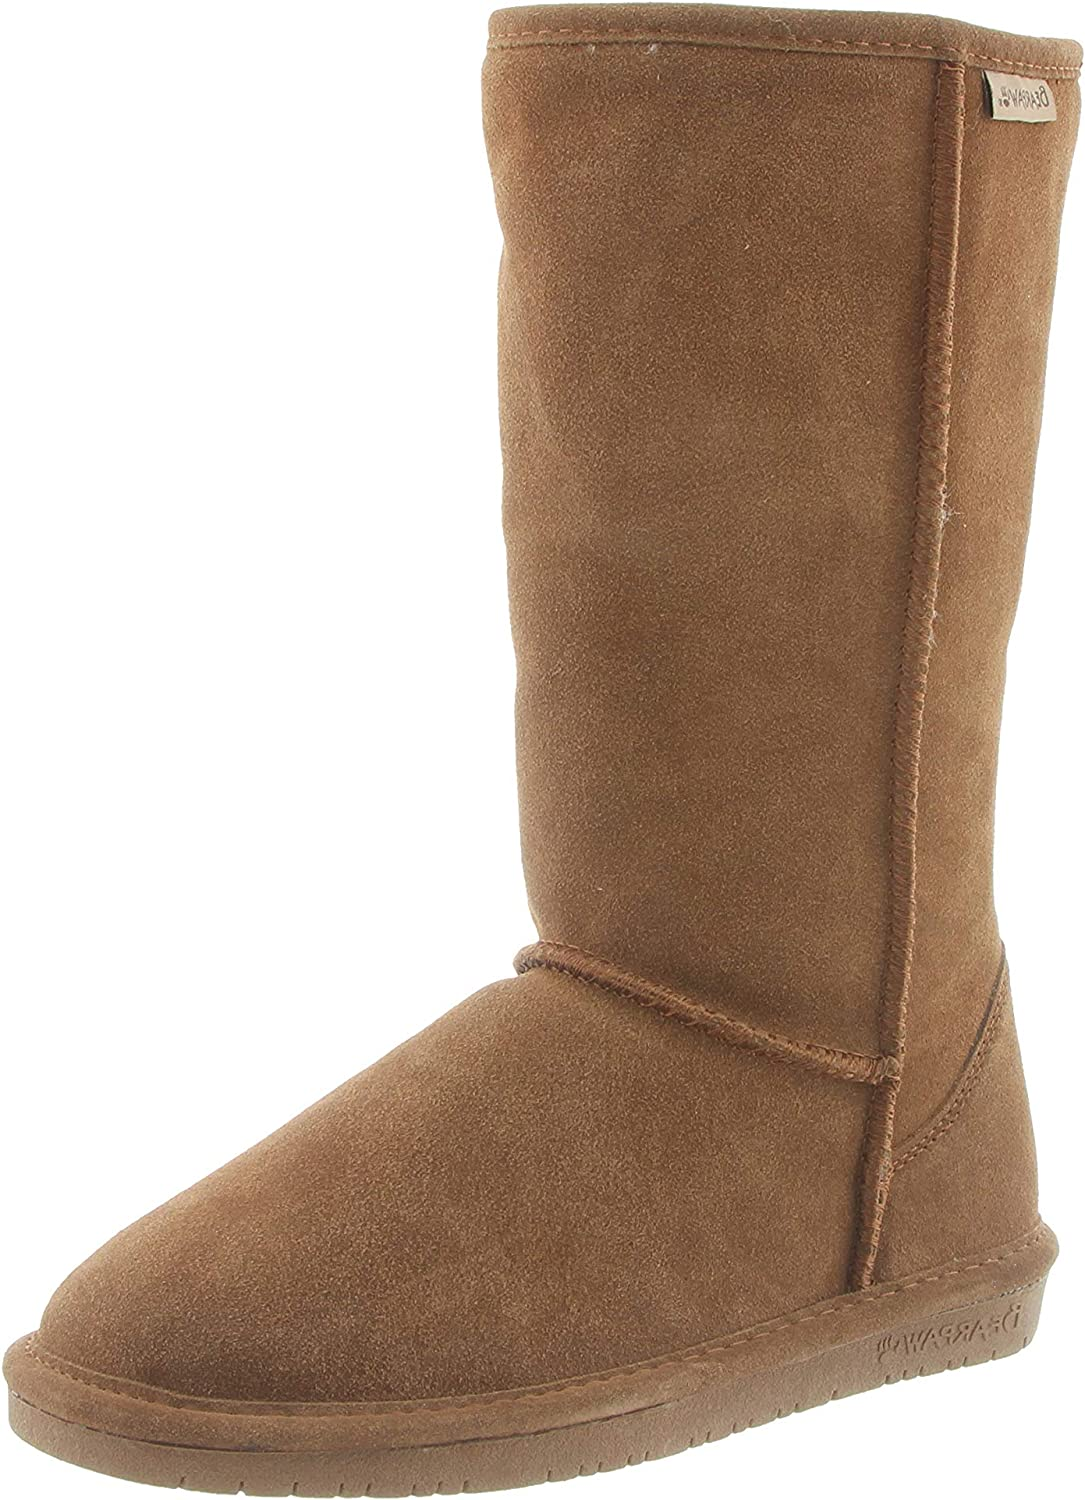 Bearpaw Casual Boots Girls Elle Tall Knee high Youth HIckory Cow Suede Fur